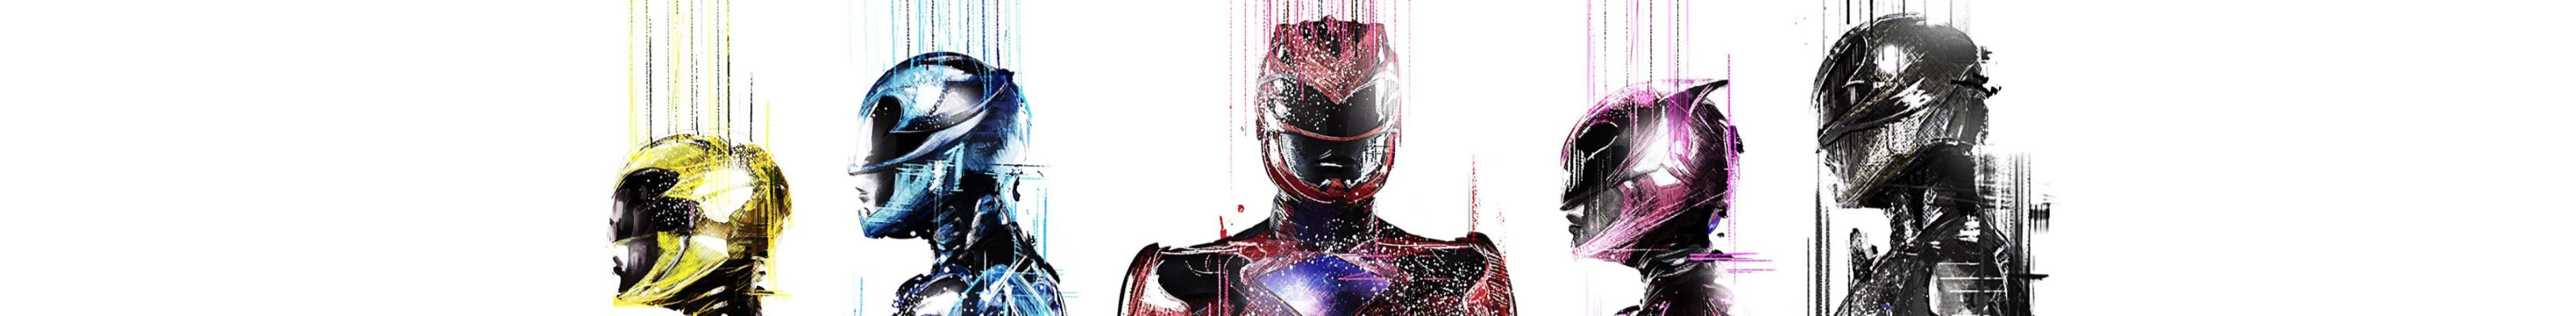 Amazing Power Rangers Wallpapers